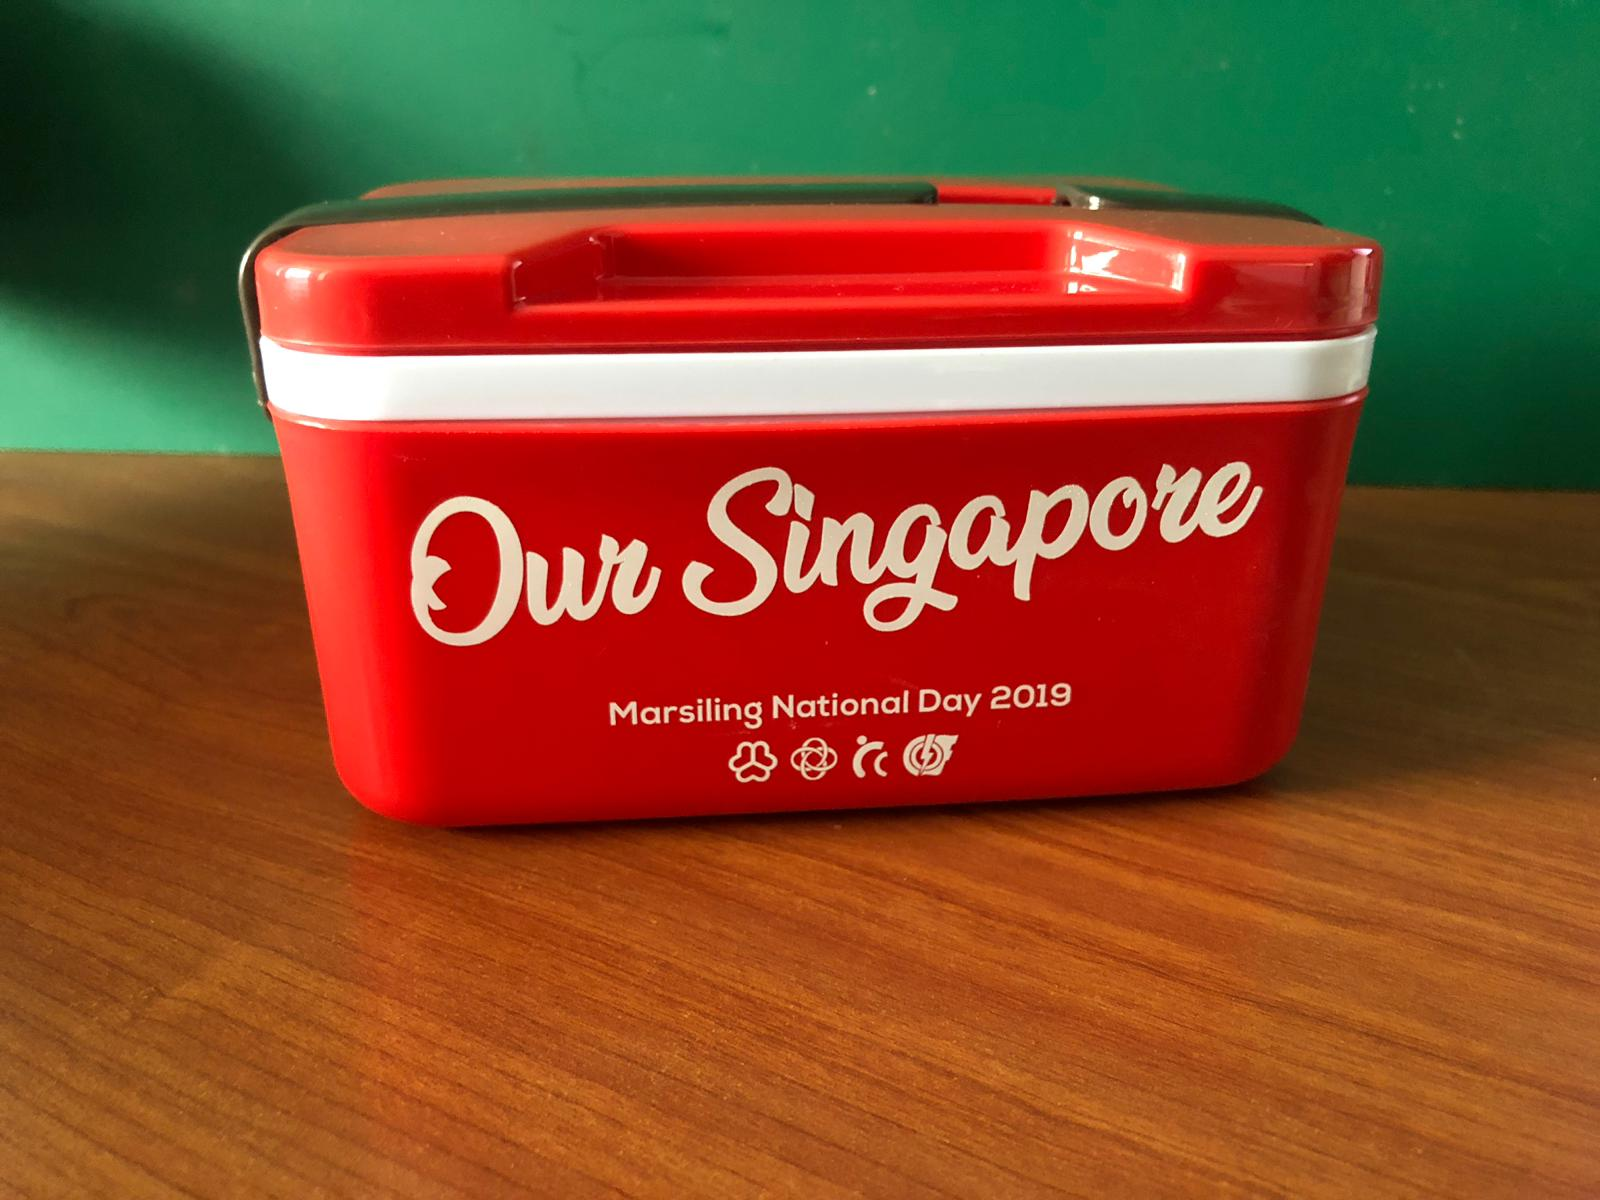 Jacob Lunch Box Printing Singapore